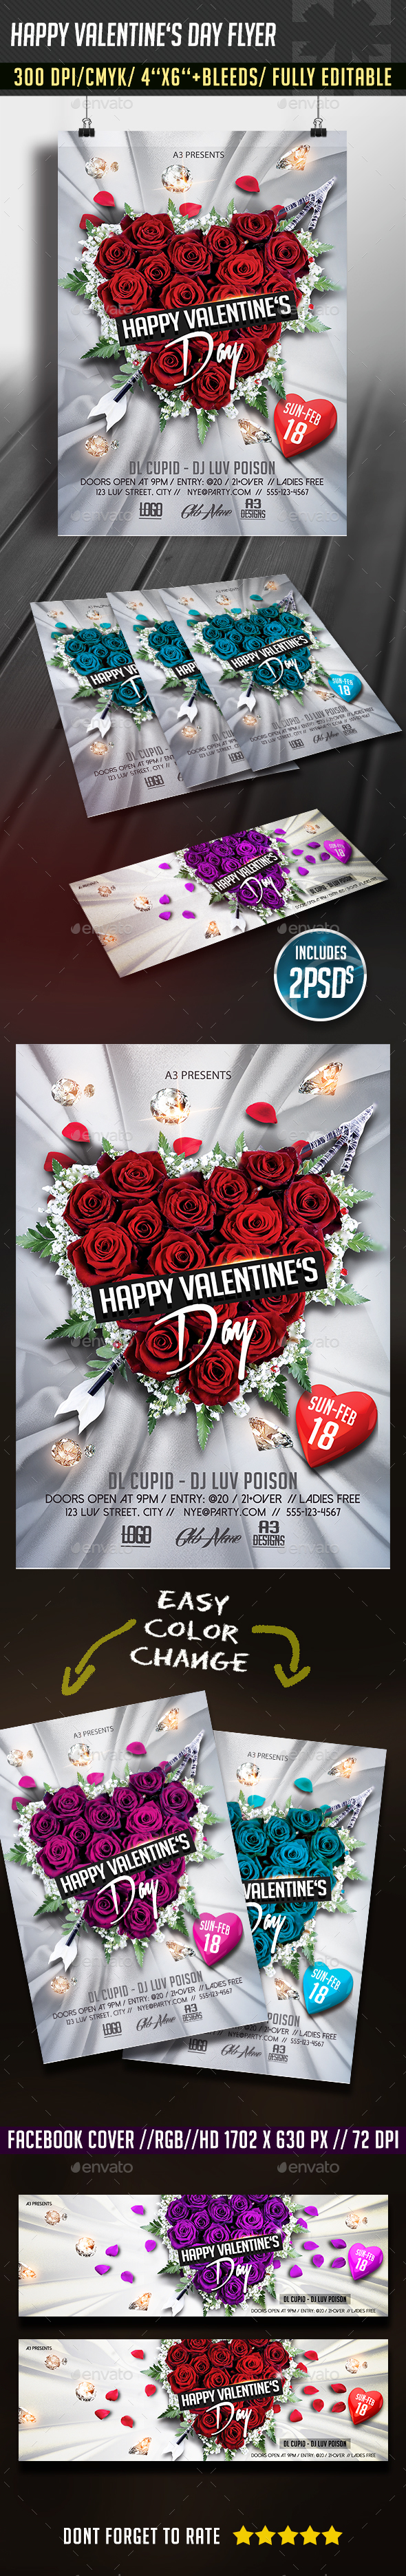 Happy Valentine's Day Flyer + FB Cover - Clubs & Parties Events